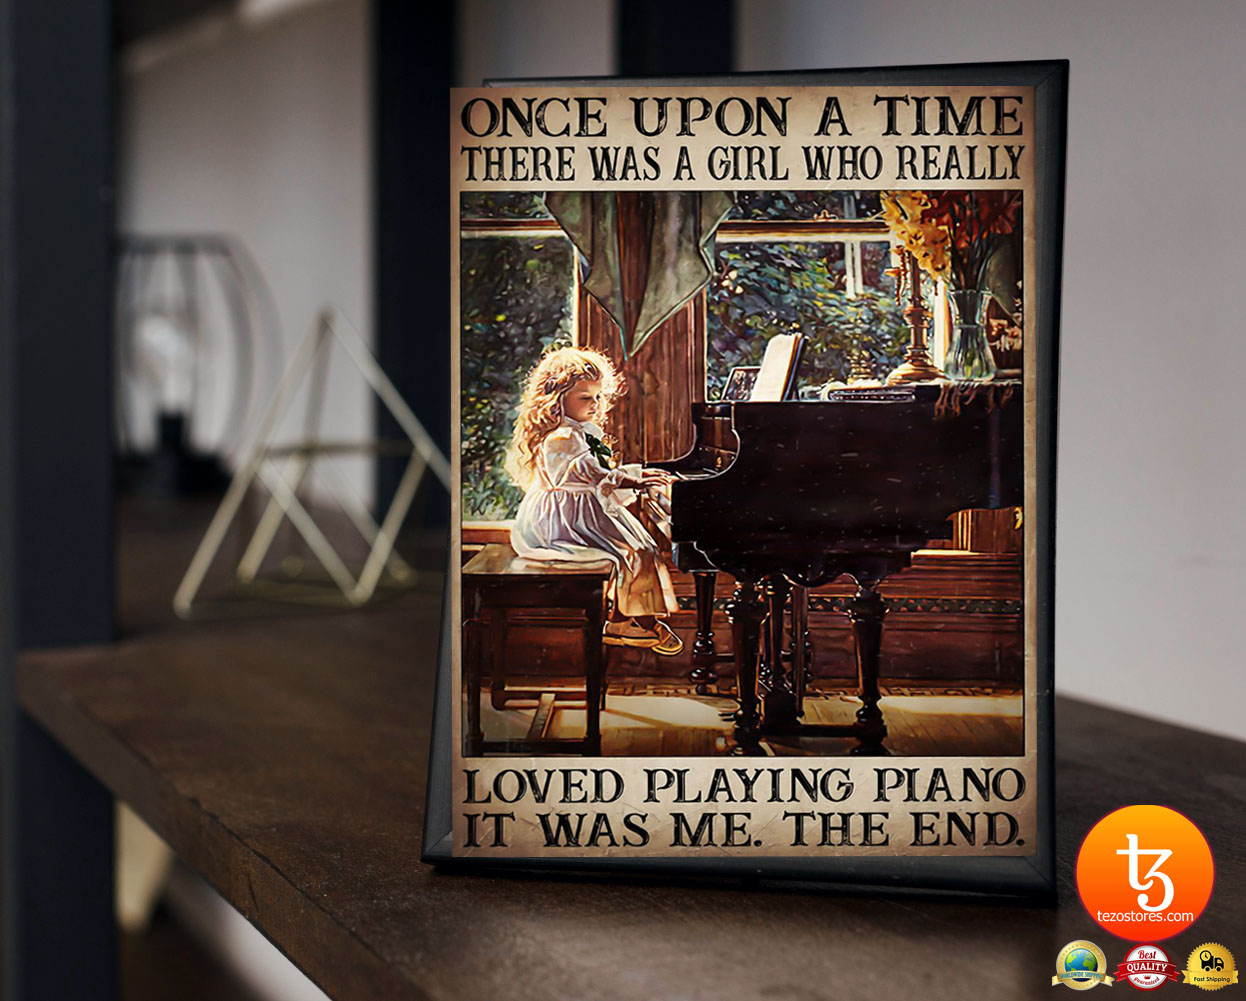 Once upon a time there was a girl who really loved playing piano poster 23